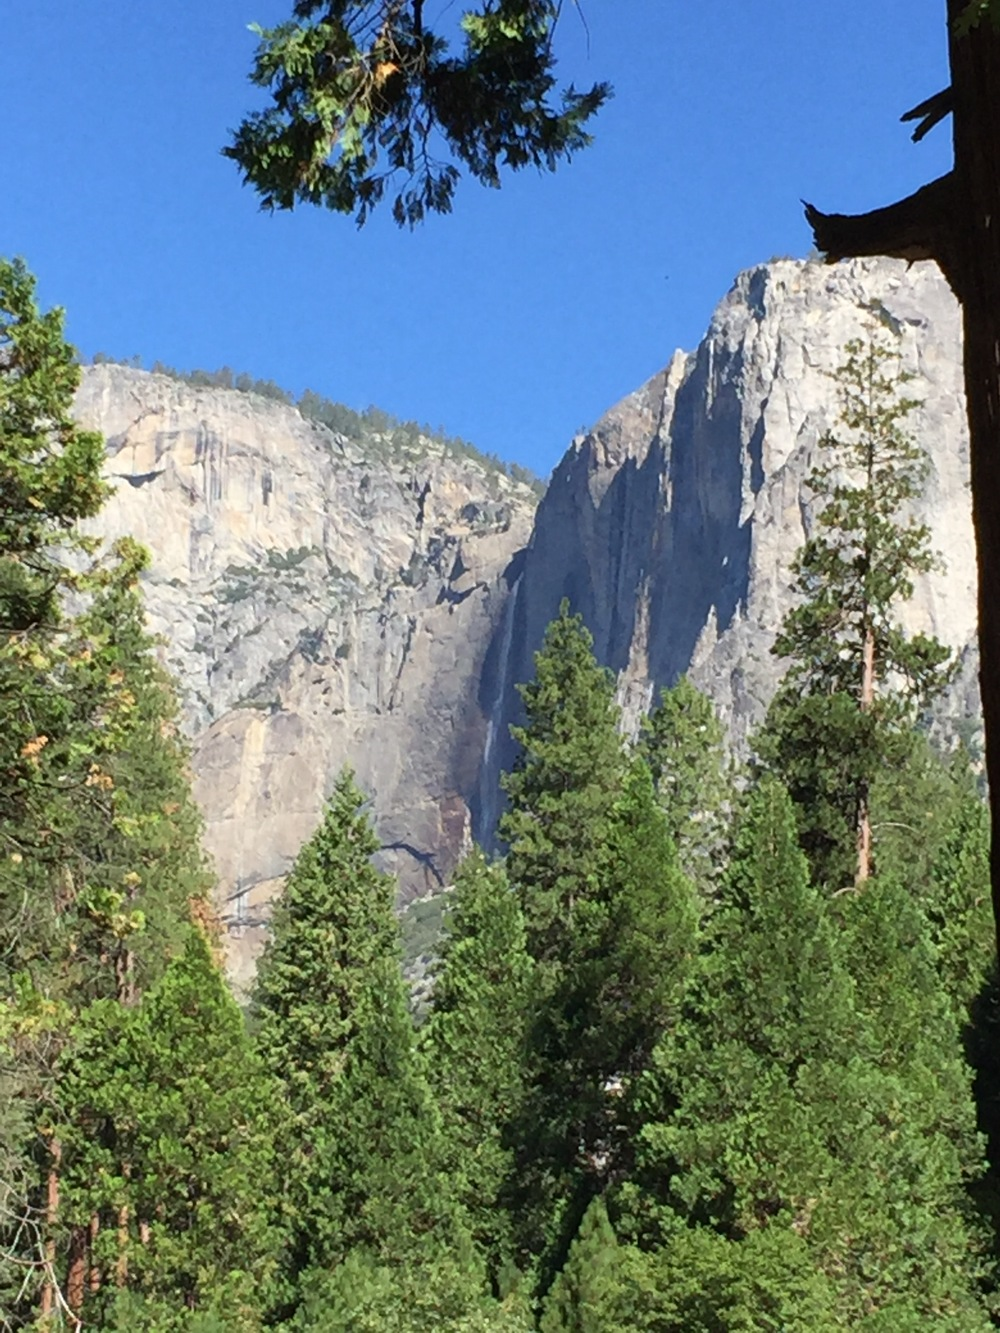 Yosemite Falls from the Valley floor